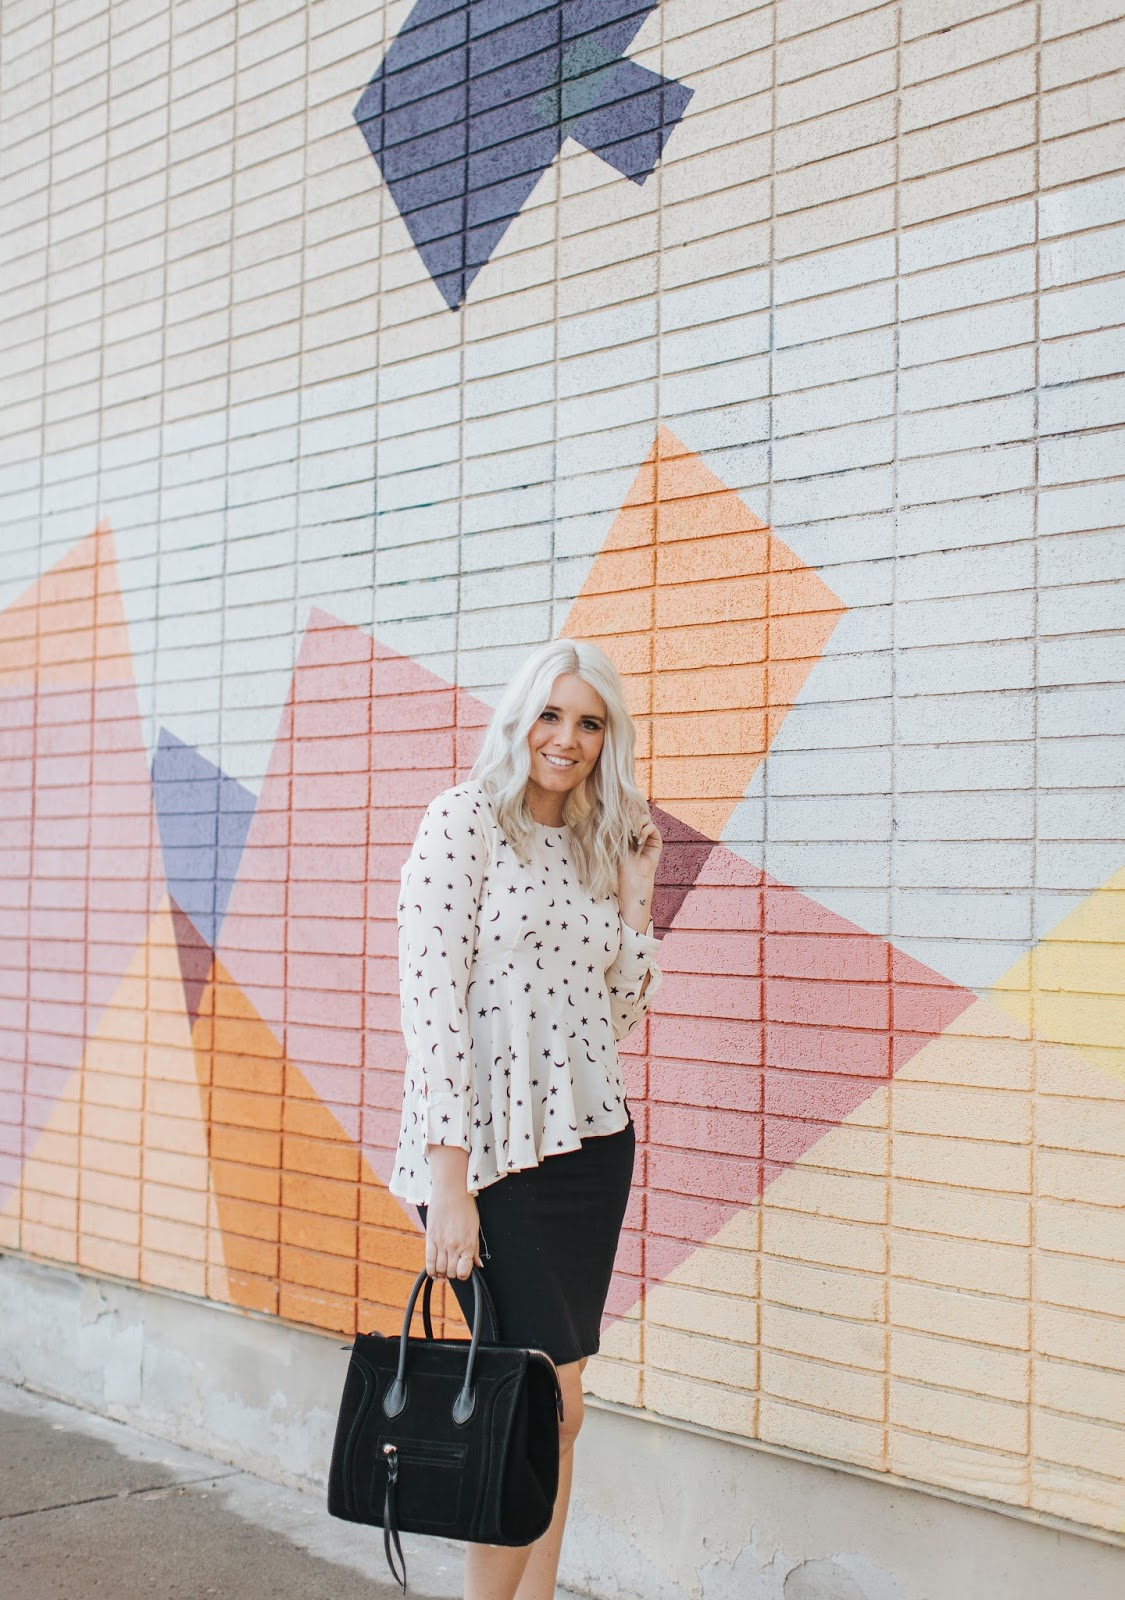 Baginc, Peplum Top, Utah Fashion Blogger